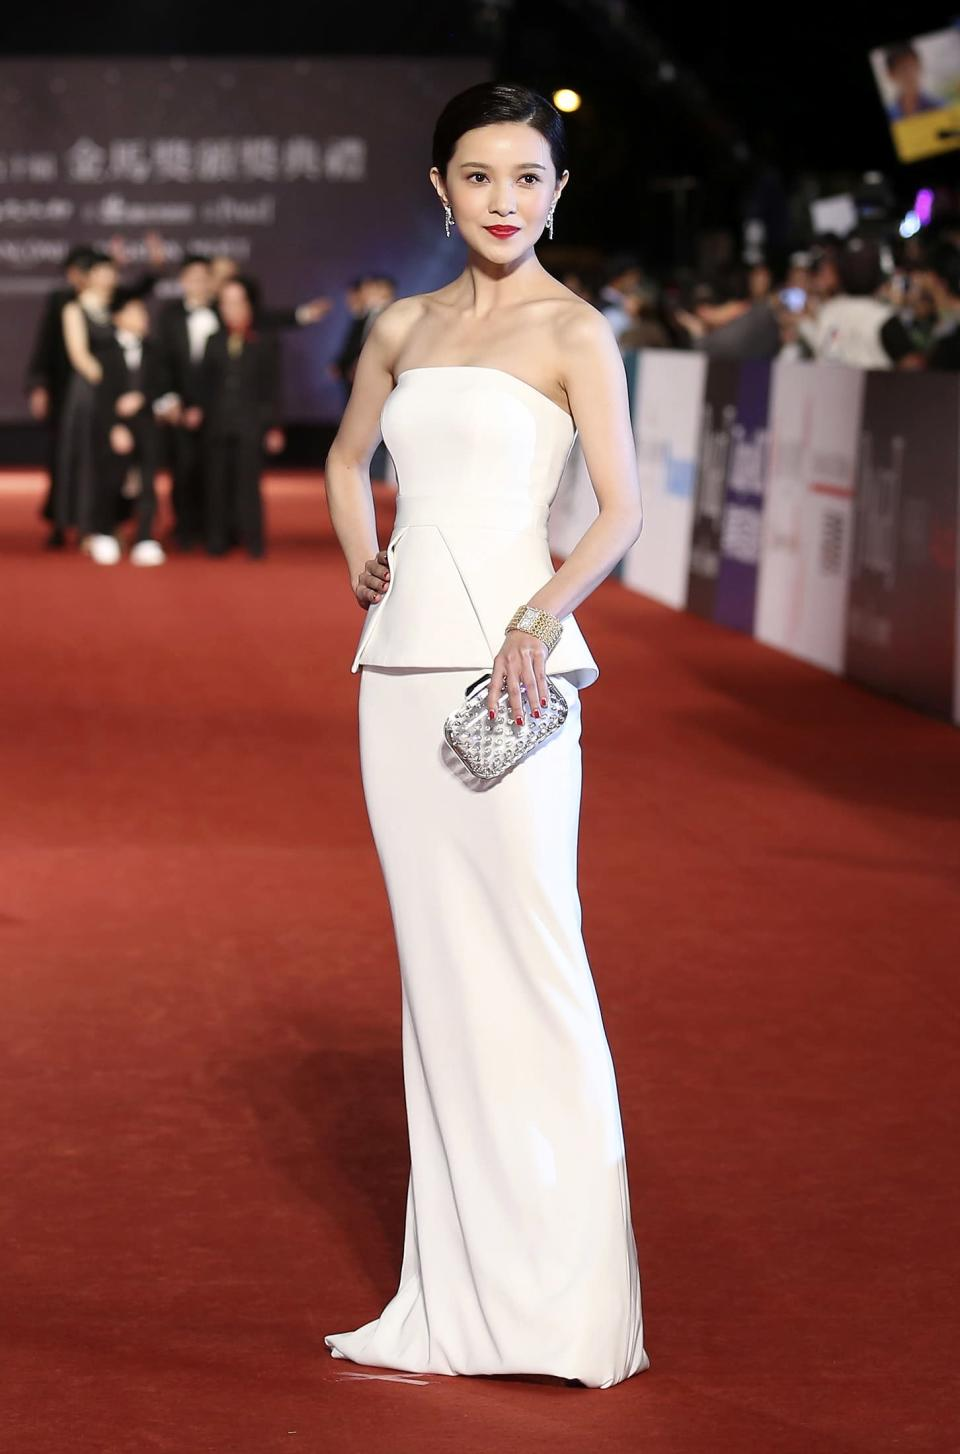 Taiwanese singer and actress Amber Kuo poses for photographers on the red carpet at the 50th Golden Horse Film Awards in Taipei November 23, 2013. REUTERS/Patrick Lin (TAIWAN - Tags: ENTERTAINMENT)